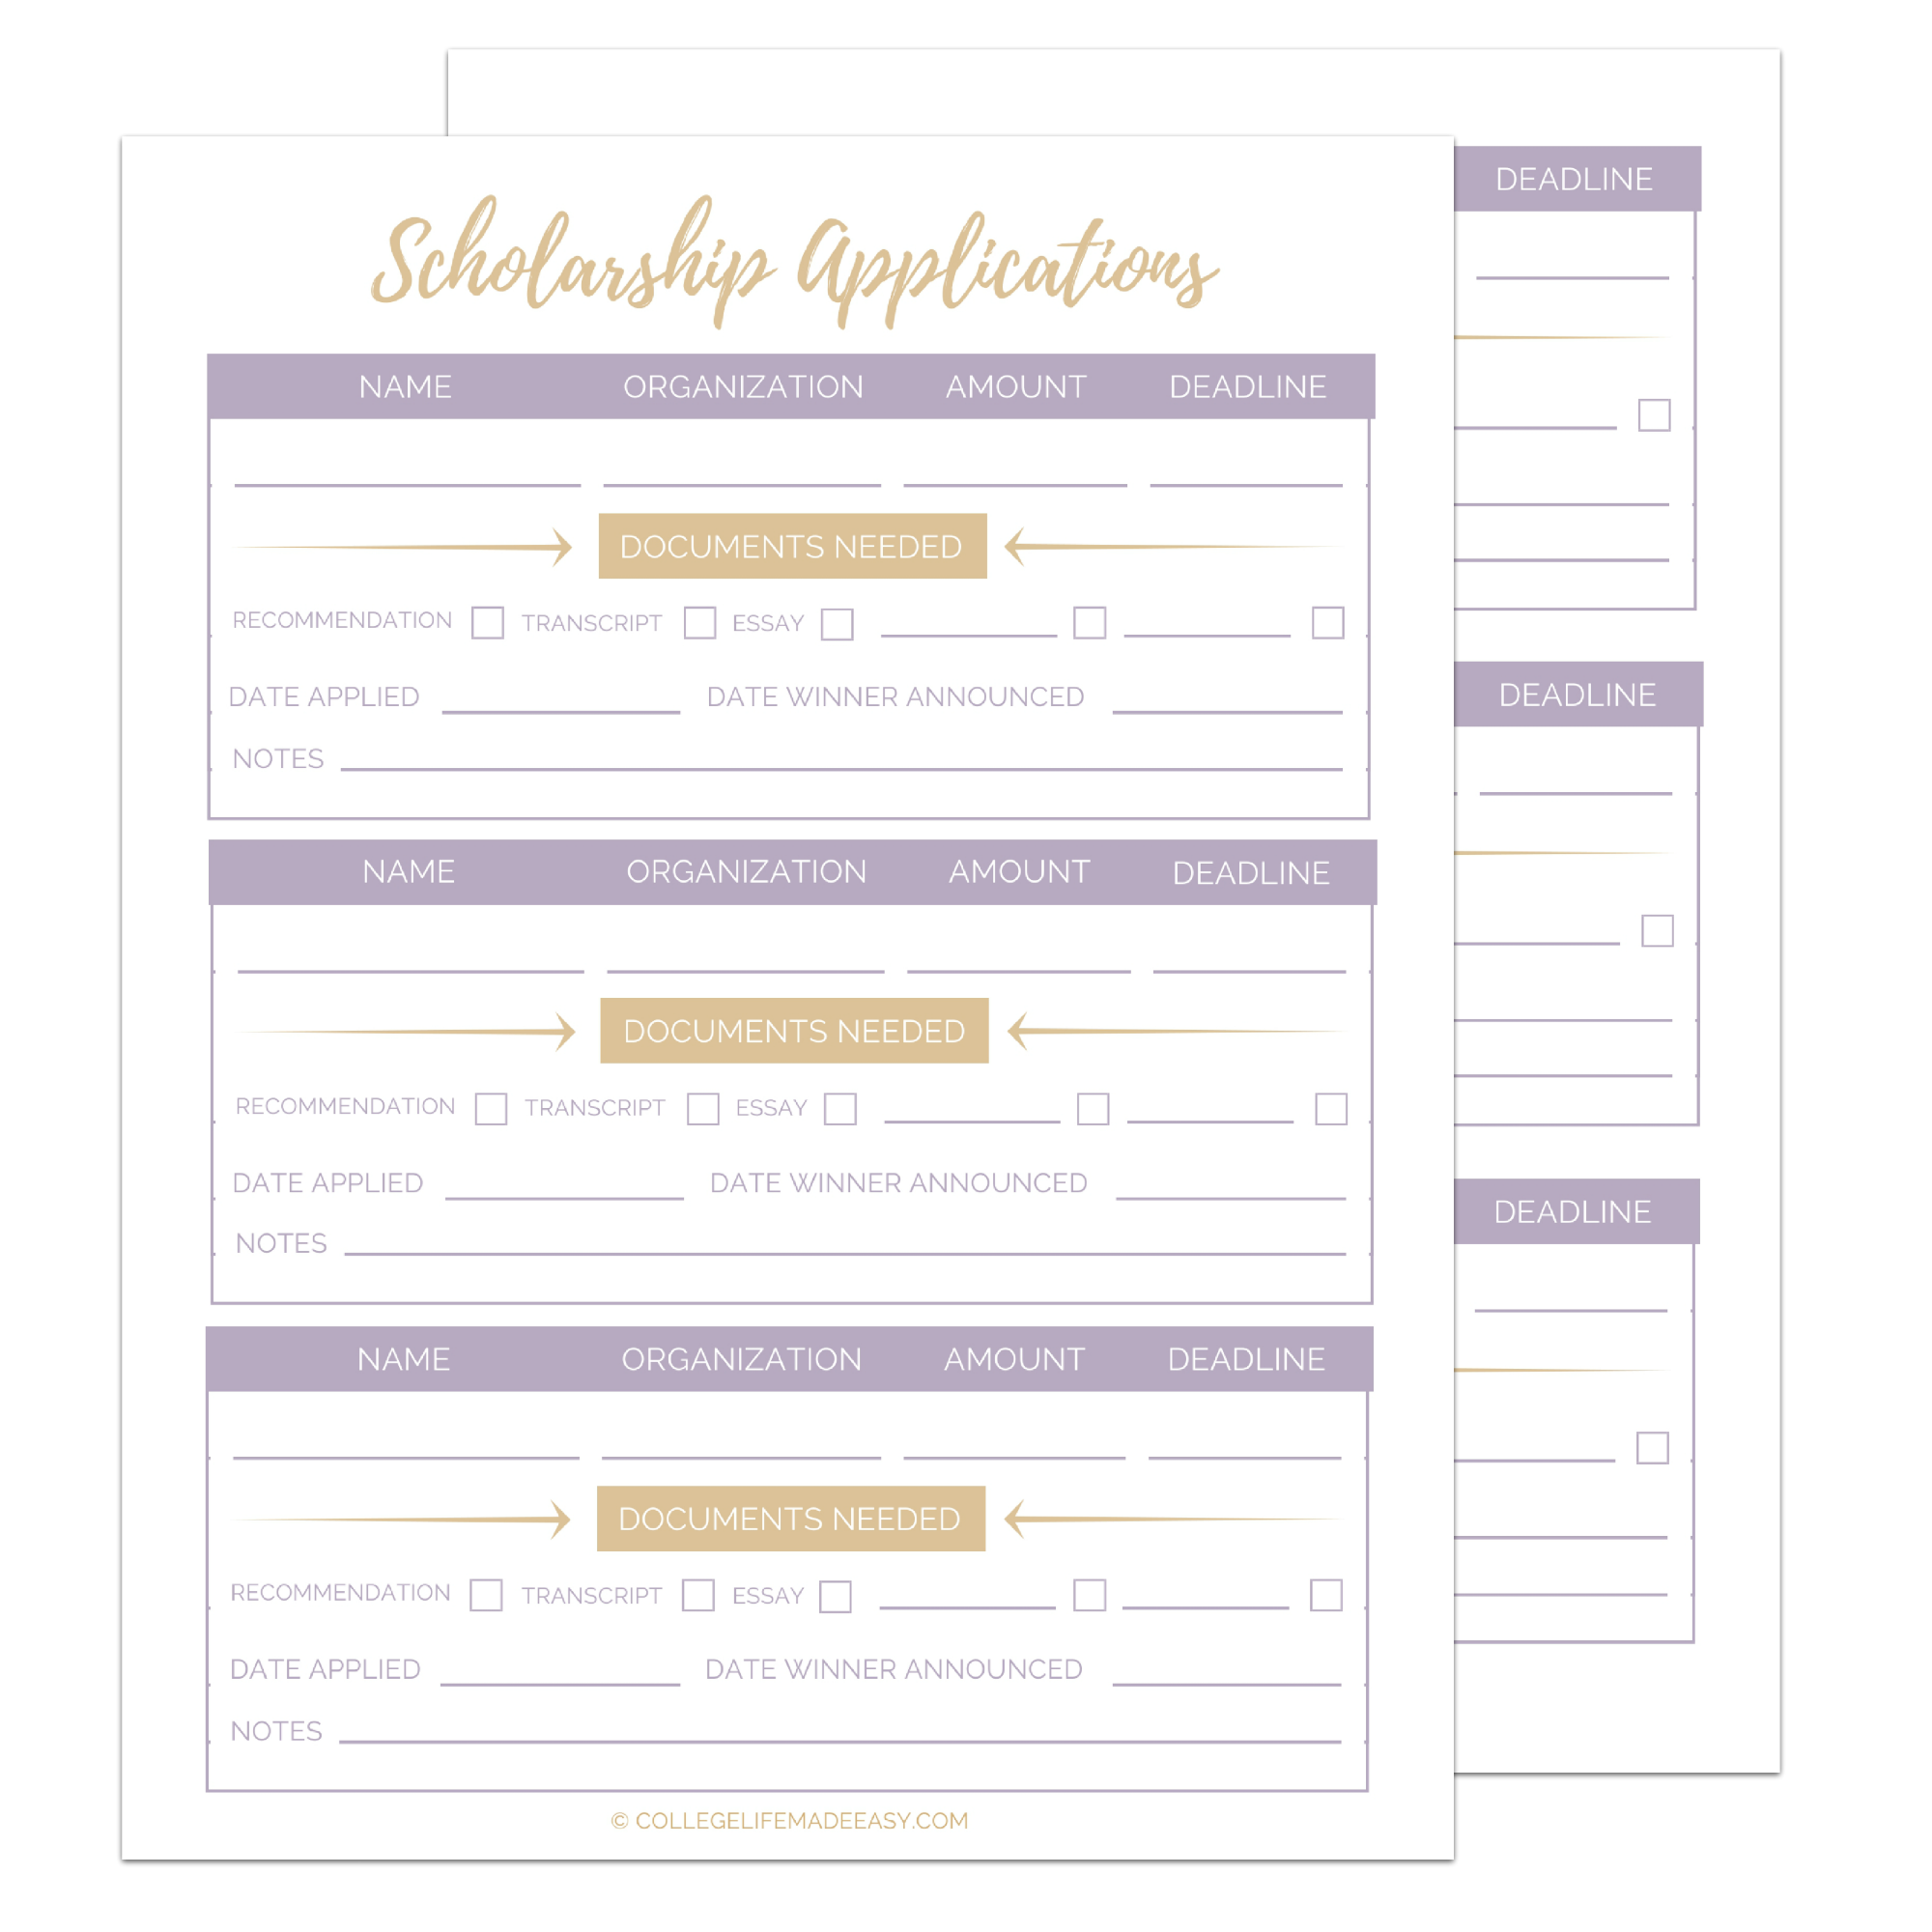 Satisfactory Printable Scholarship Applications